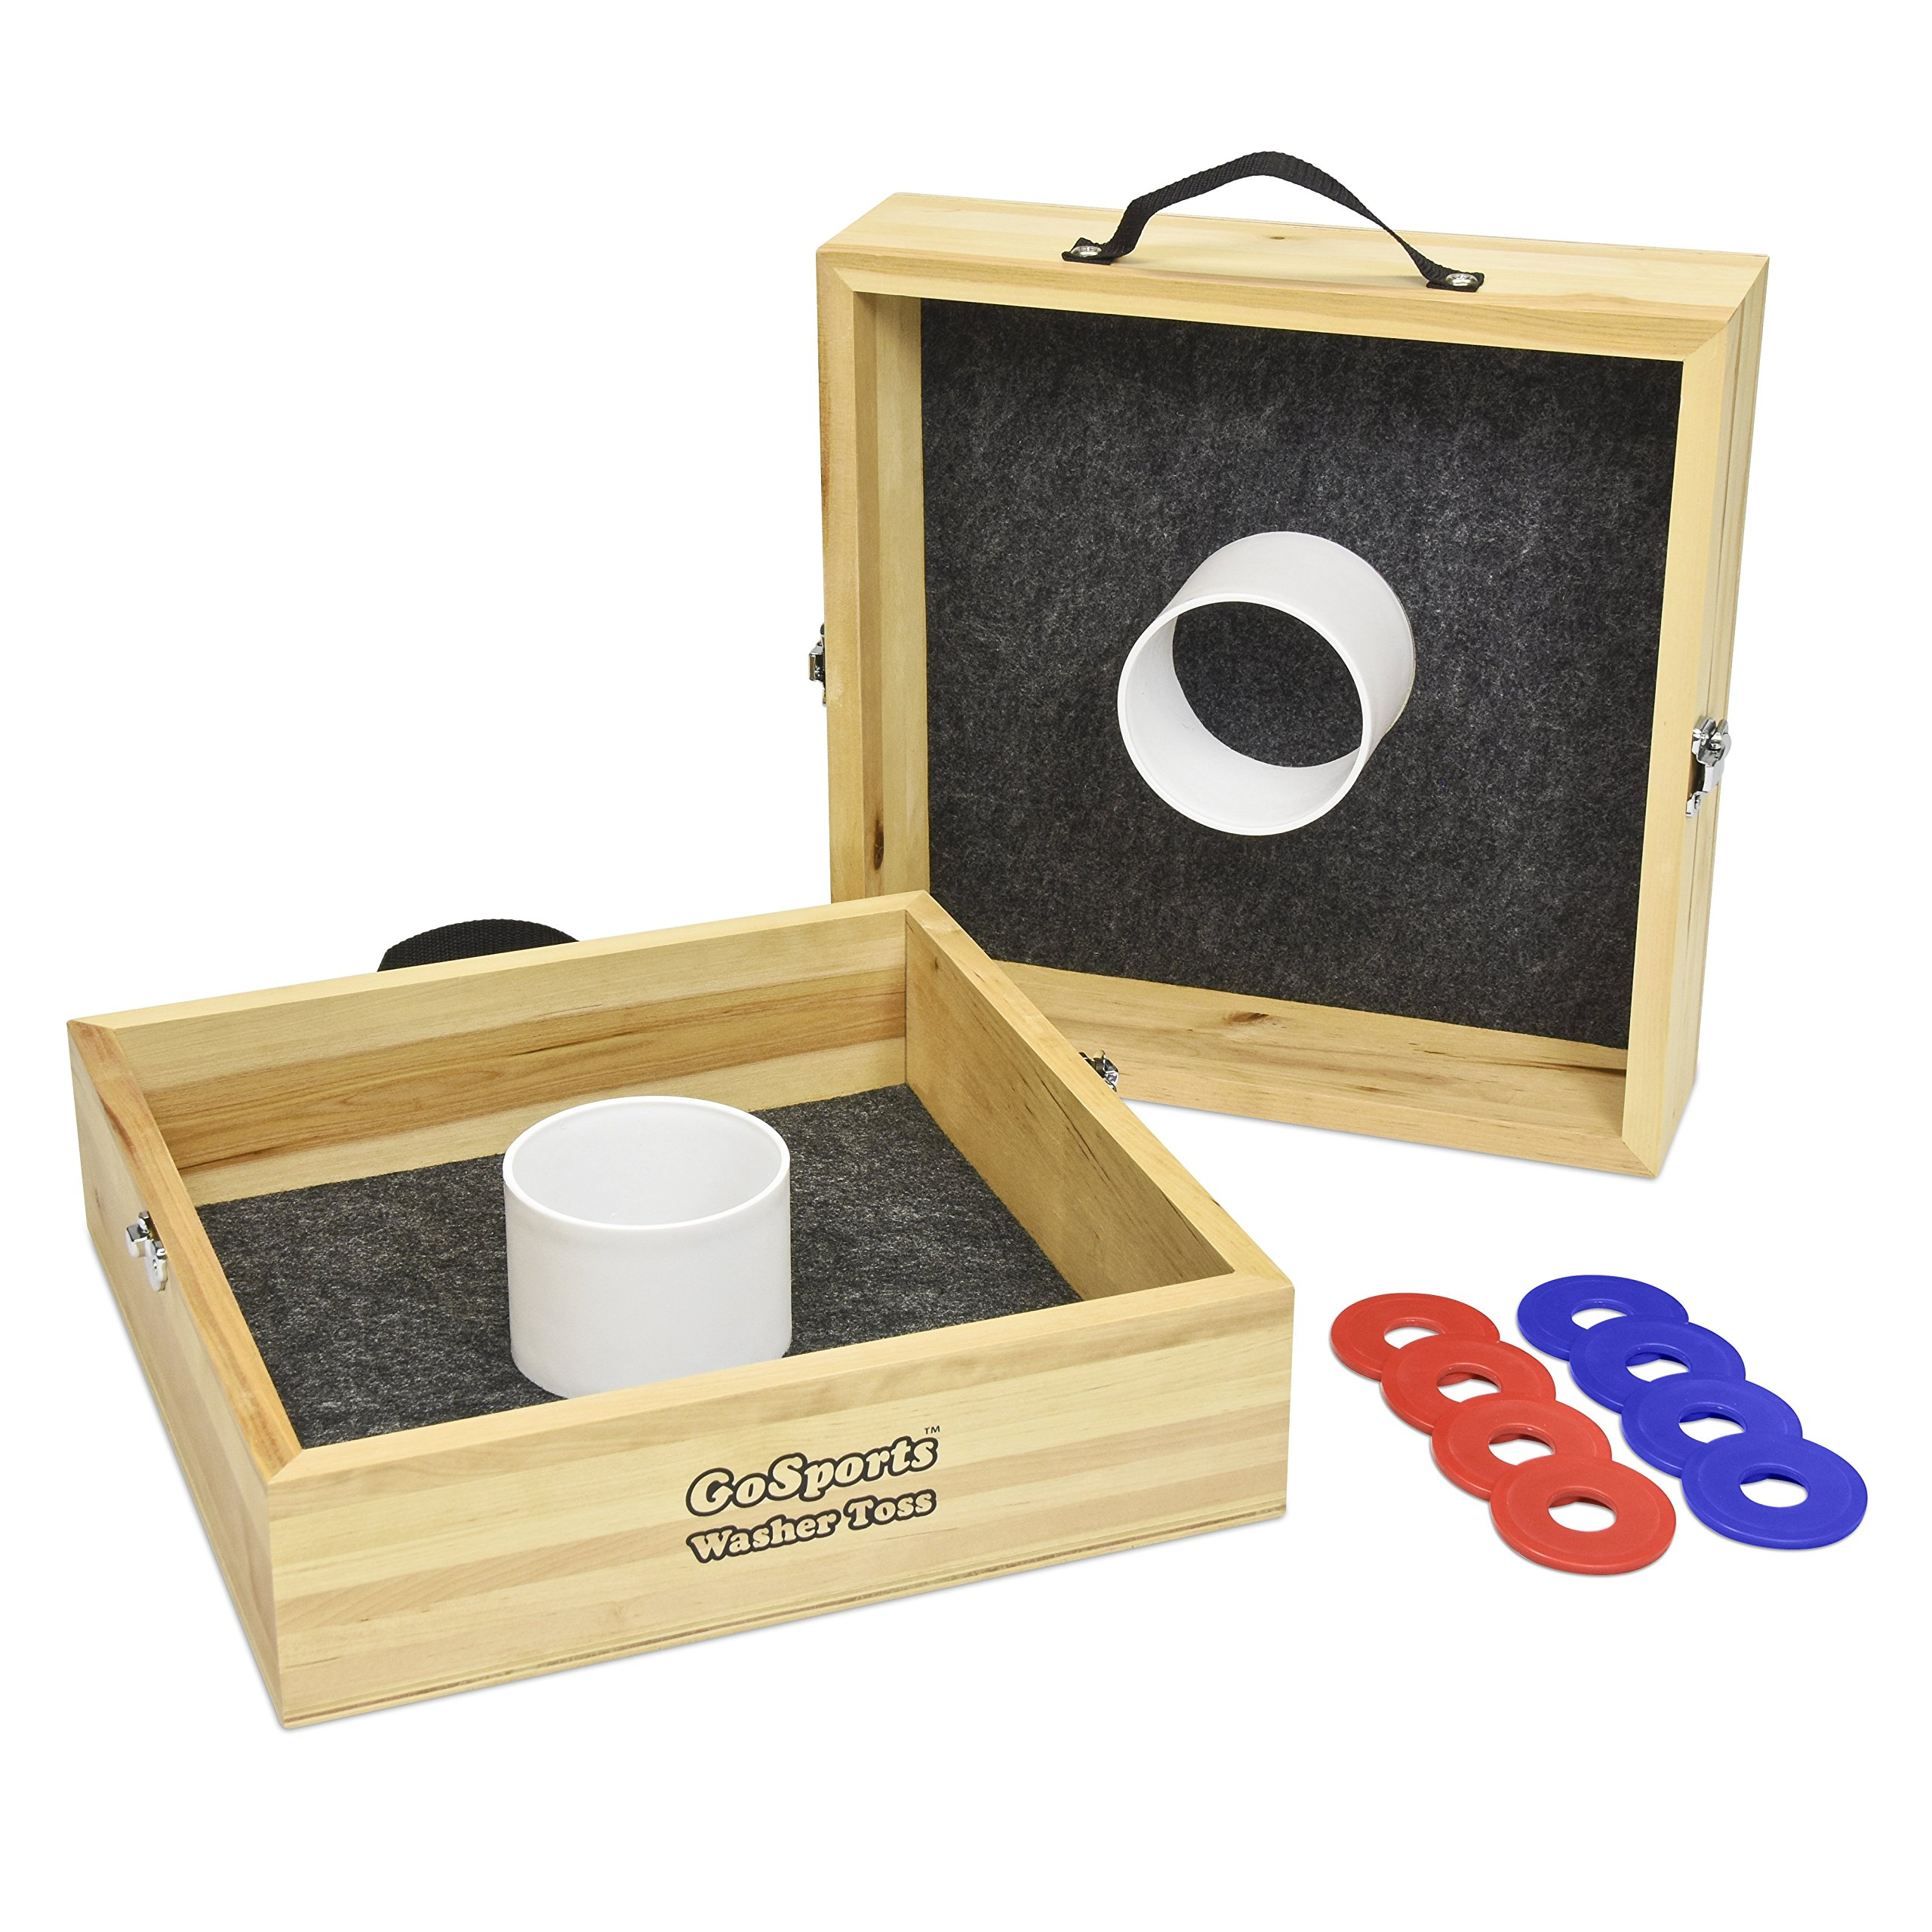 GoSports Premium Birch Wood Washer Toss Game by GoSports